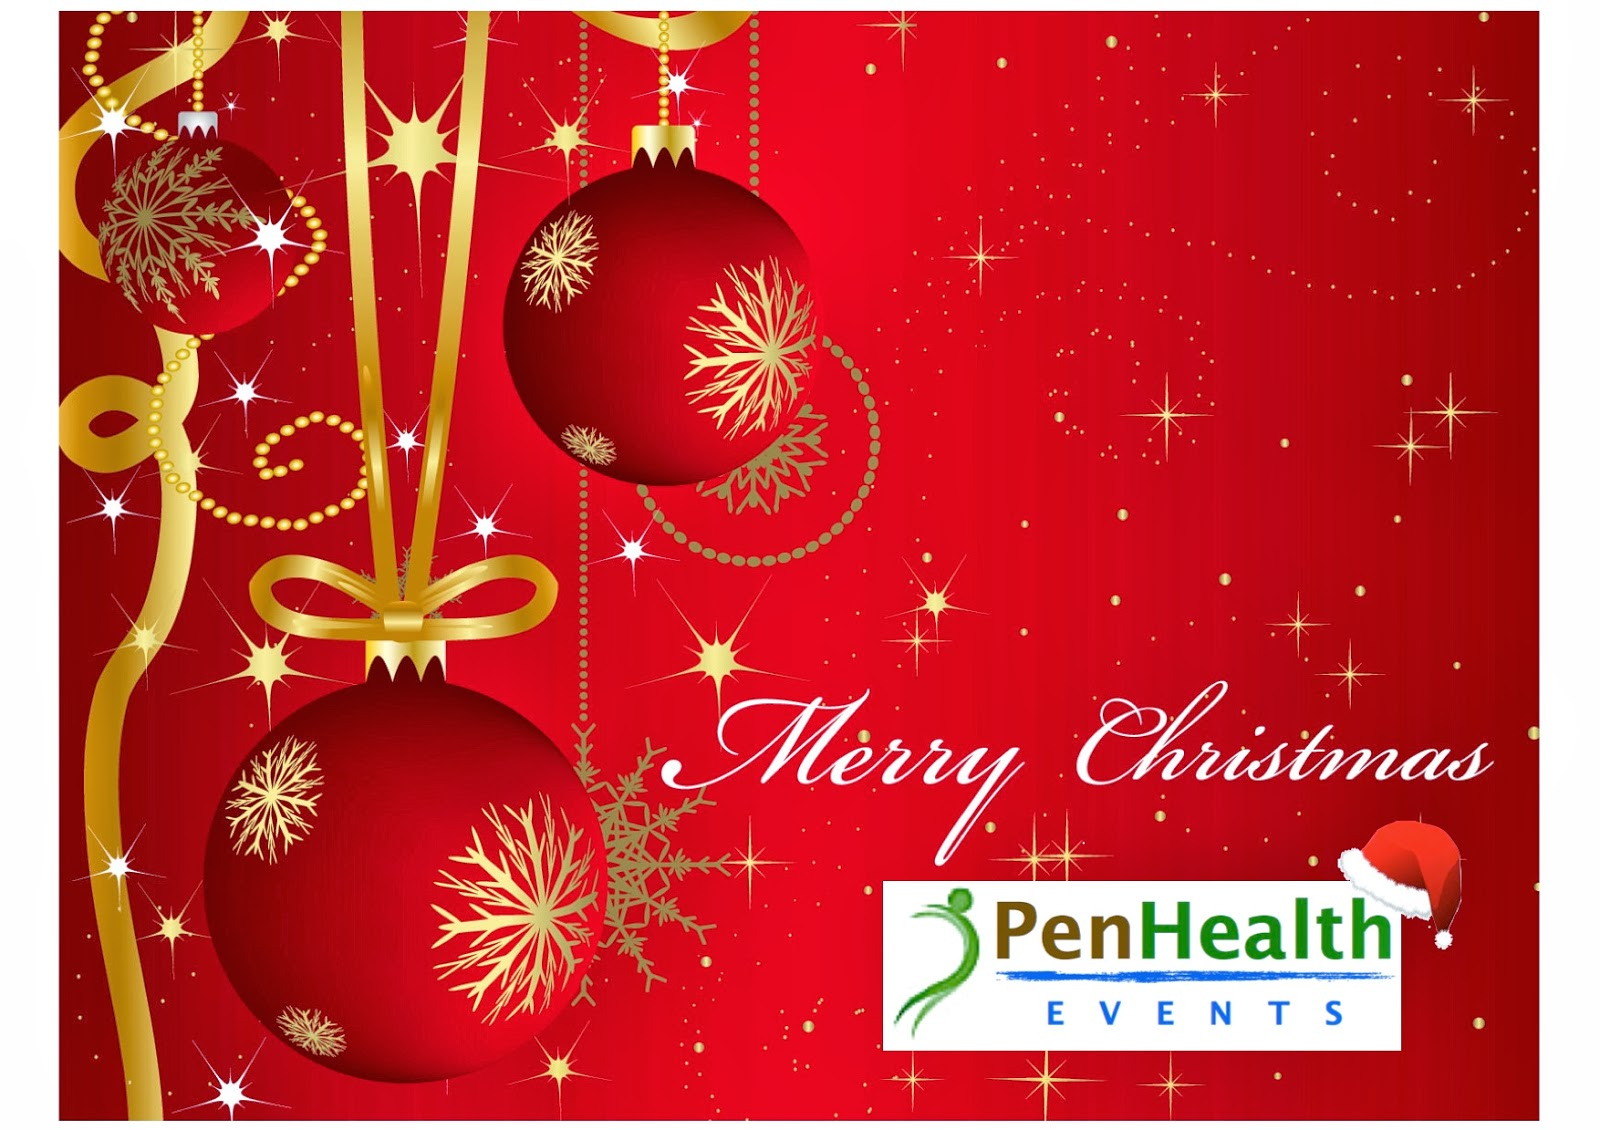 penhealth events management and staff would like to wish all our customers a merry christmas and a happy new year wishing you and your family have a